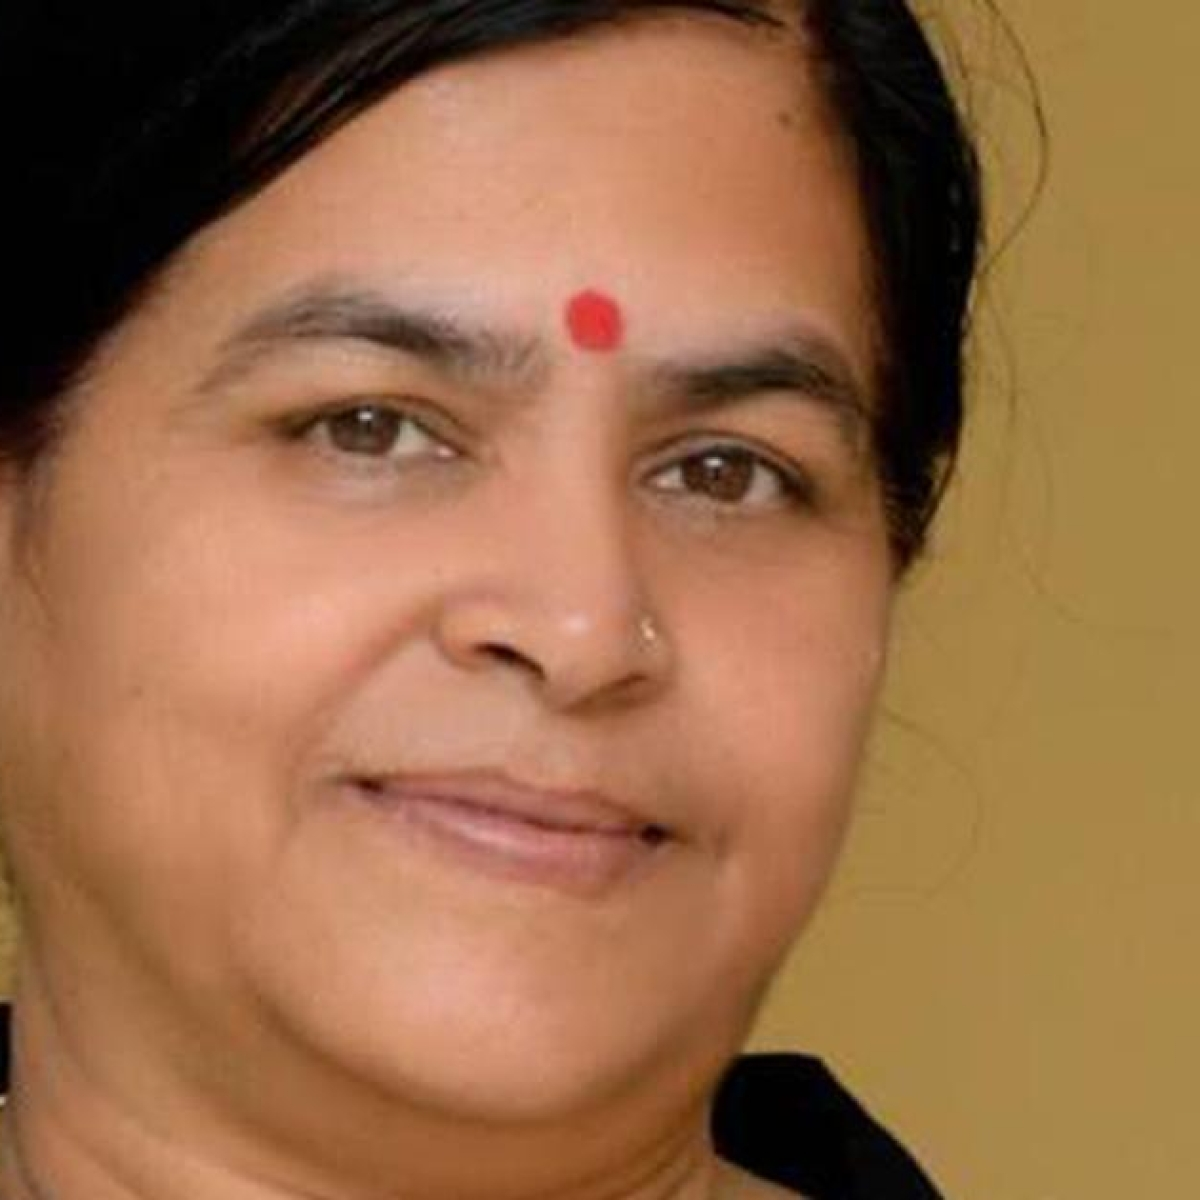 Indore: After Usha Thakur's yagna sermon, several villagers organise haawan